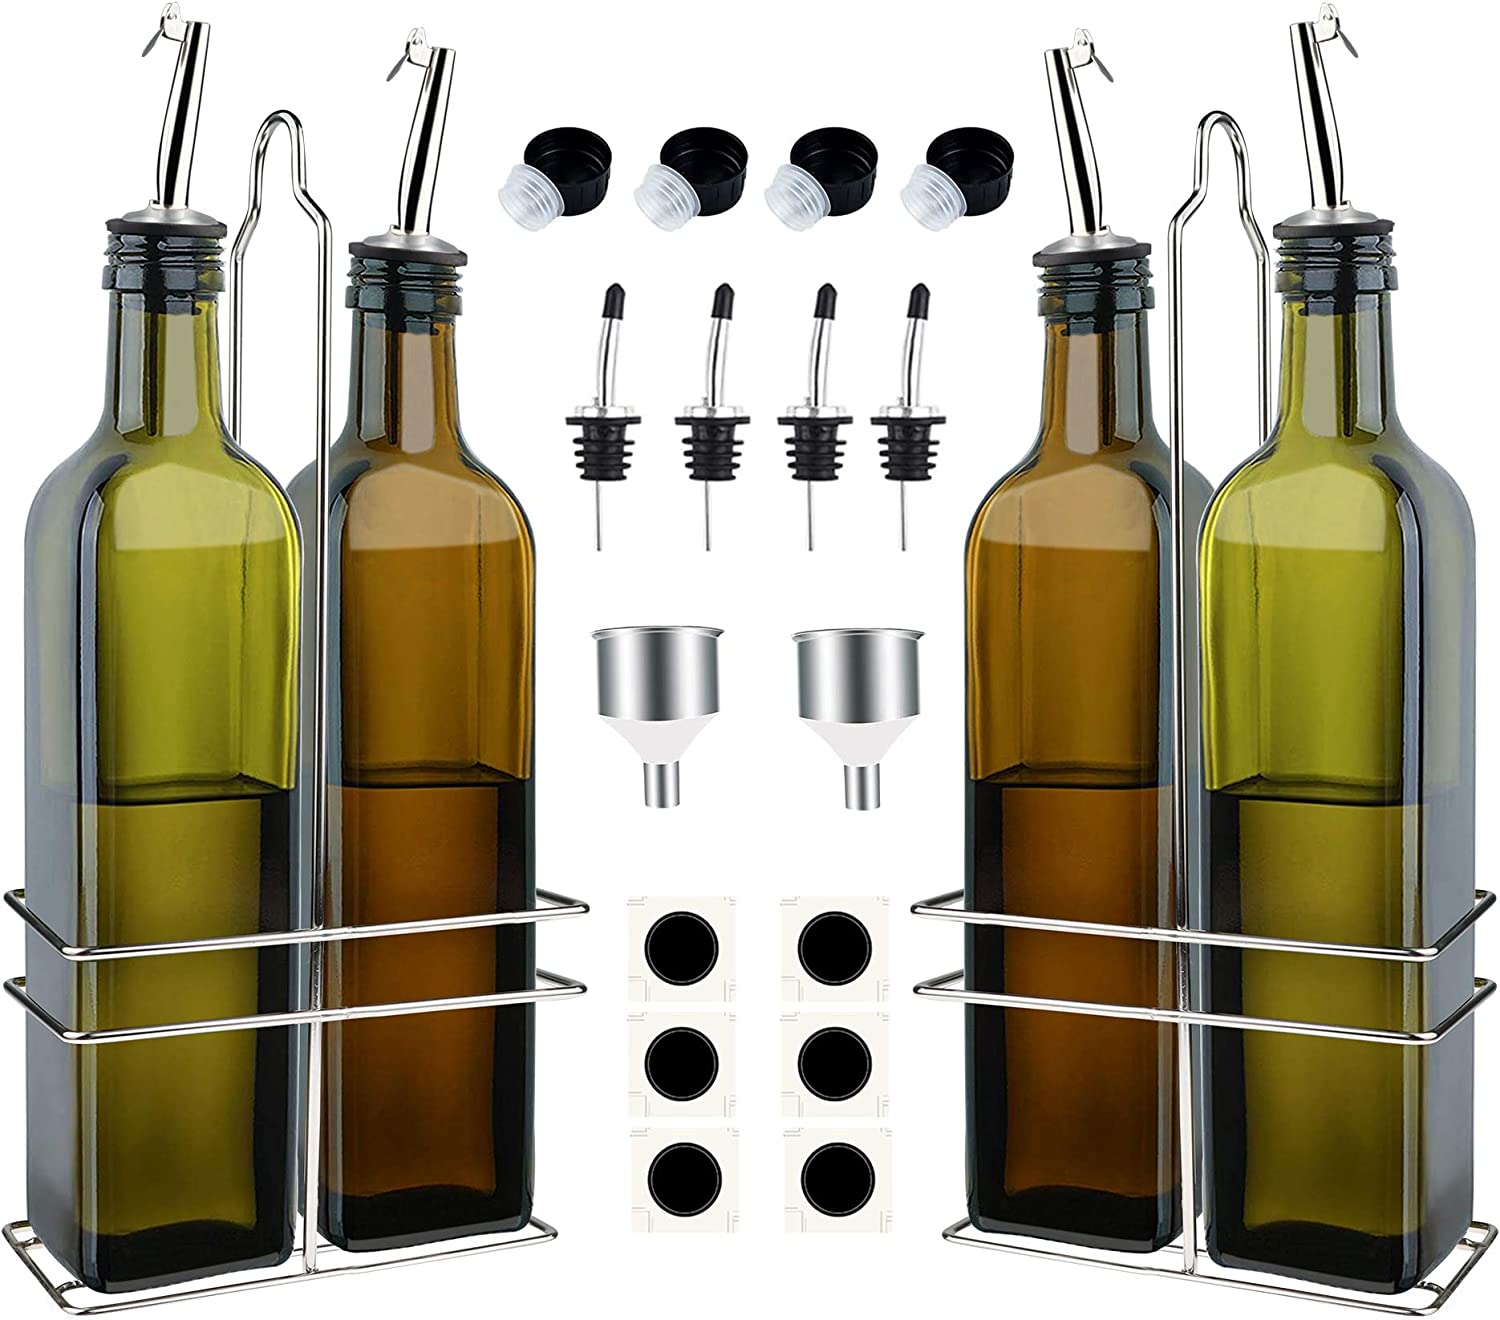 Oil Dispenser, 4 Pack Olive Oil Dispenser Bottle for Kitchen, 17oz Leak Proof Oil and Vinegar Cruet Set with Stainless Steel Rack, Spouts and Funnels and Labels (4 Bottles 500ml, Green and Brown)